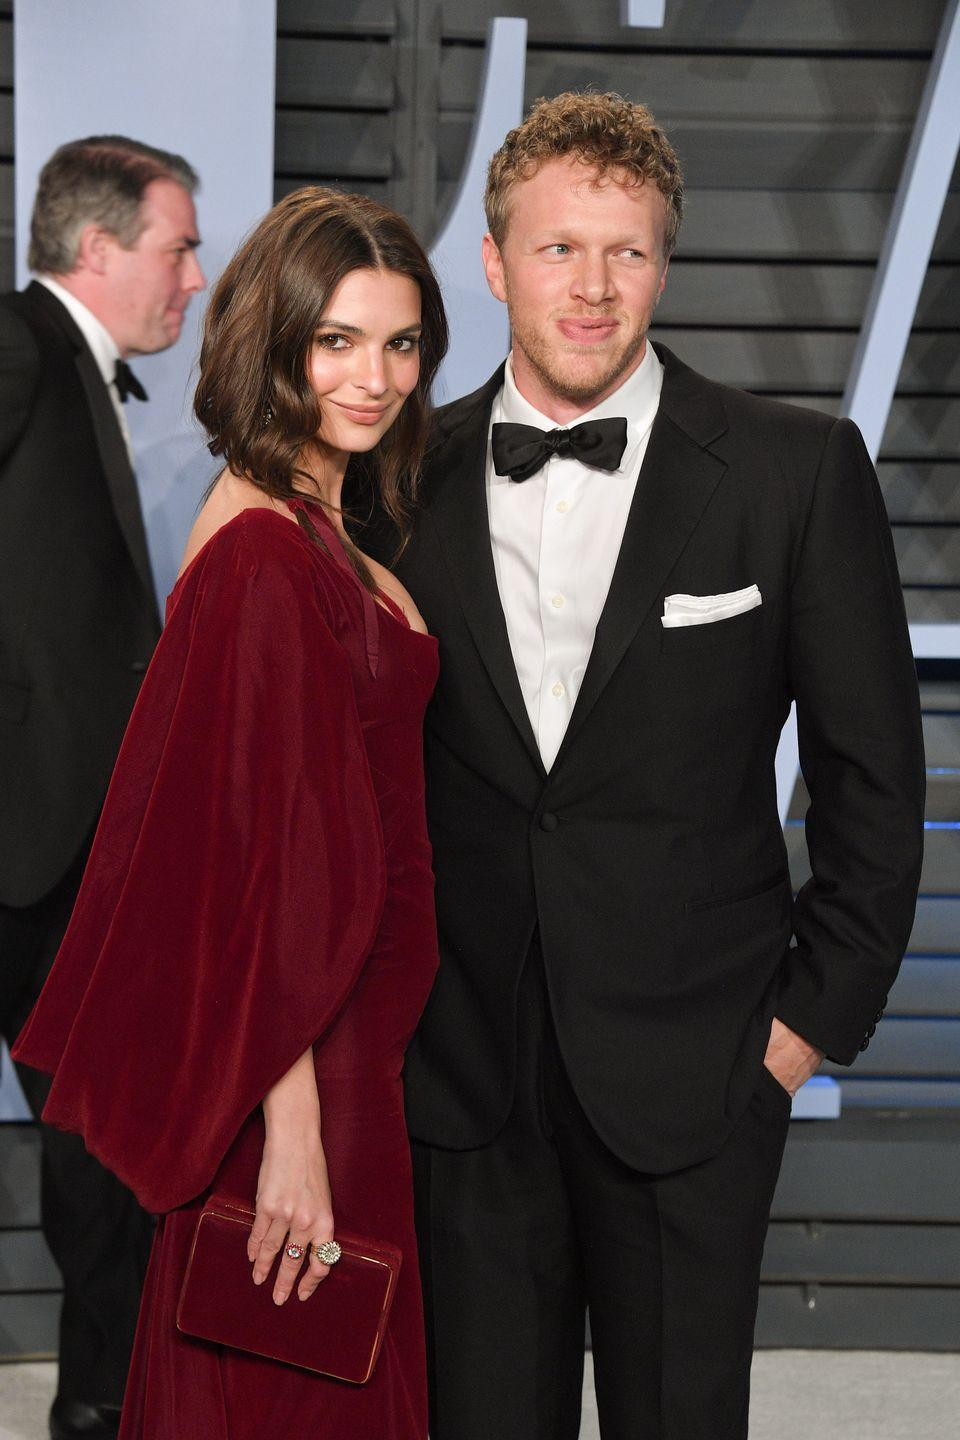 """<p>Emily Ratajkowski kept her wedding simple when she eloped with Sebastian Bear at the courthouse in New York City, wearing a mustard yellow pantsuit and a black veiled hat. Emily <a href=""""https://www.instagram.com/p/Bfje4PBFMMI/?"""" rel=""""nofollow noopener"""" target=""""_blank"""" data-ylk=""""slk:shared the news on Instagram"""" class=""""link rapid-noclick-resp"""">shared the news on Instagram</a>, with the <a href=""""https://www.harpersbazaar.com/celebrity/latest/a18699792/emily-ratajkowski-married/"""" rel=""""nofollow noopener"""" target=""""_blank"""" data-ylk=""""slk:caption"""" class=""""link rapid-noclick-resp"""">caption</a>, """"Sooo, I have a surprise, I got married today.""""</p>"""